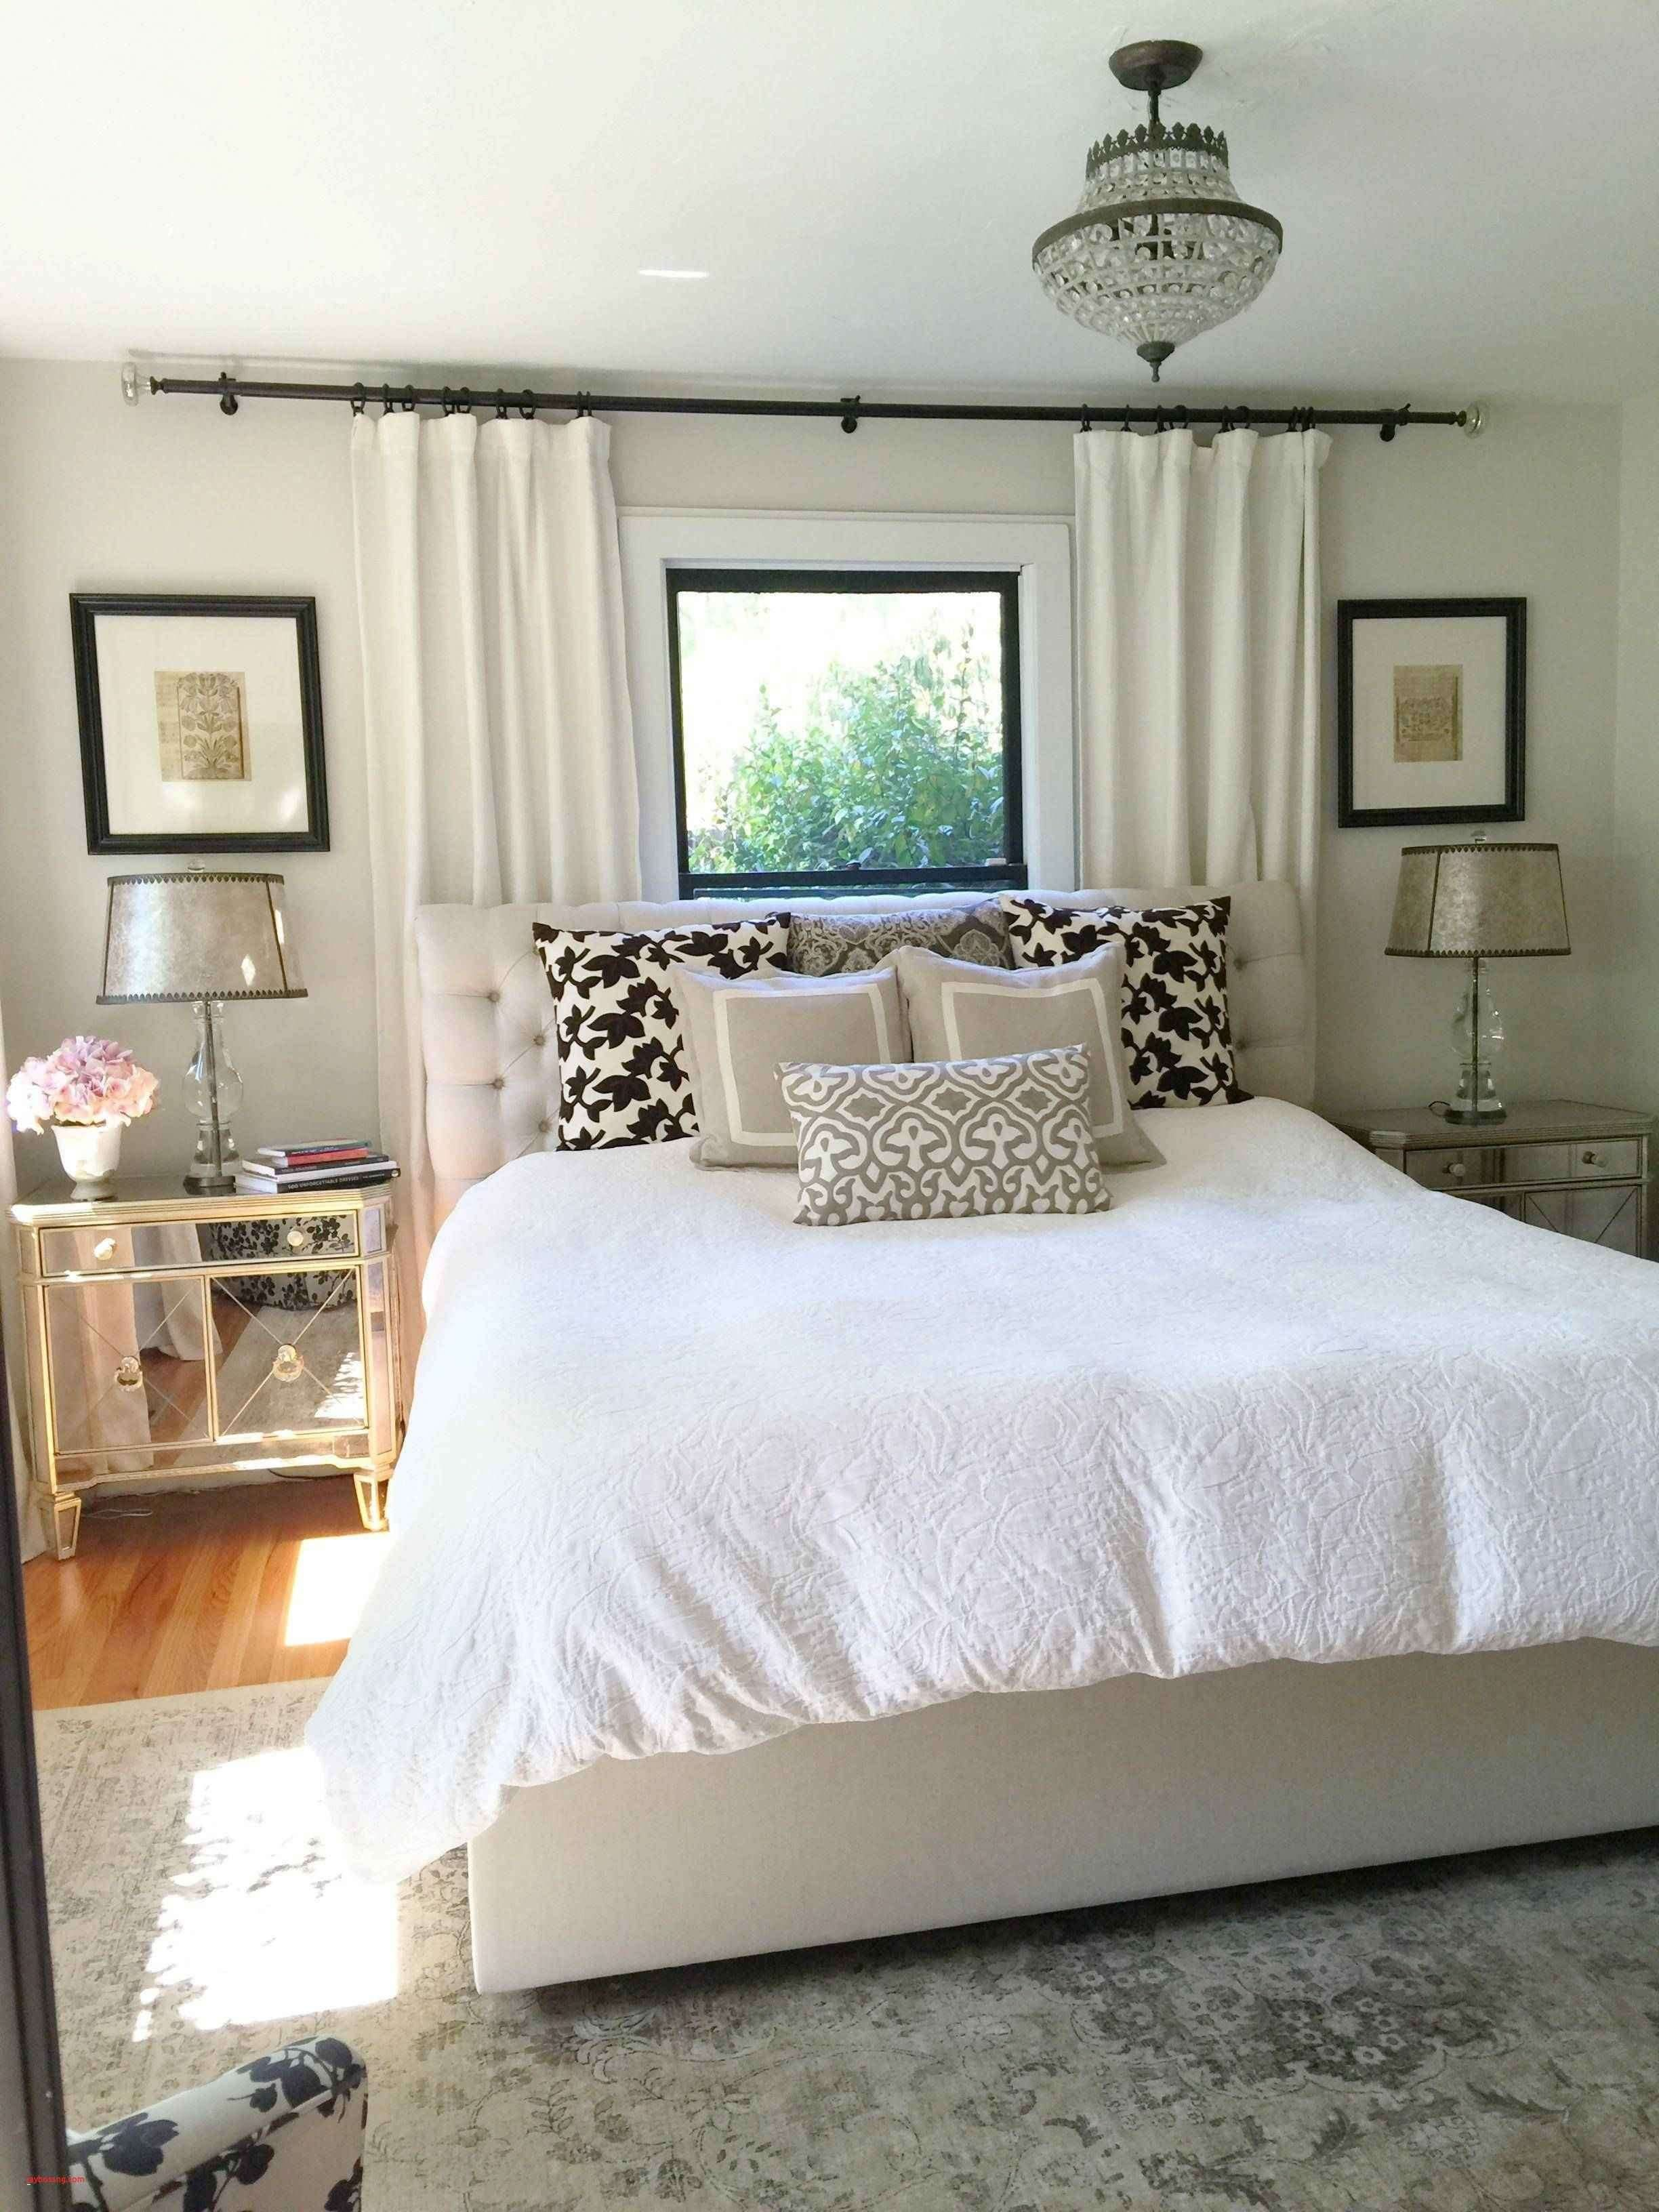 Best 12 Incredible Initiatives Of How To Makeover Aarons Furniture Bedroom Set Small Master Bedroom 400 x 300